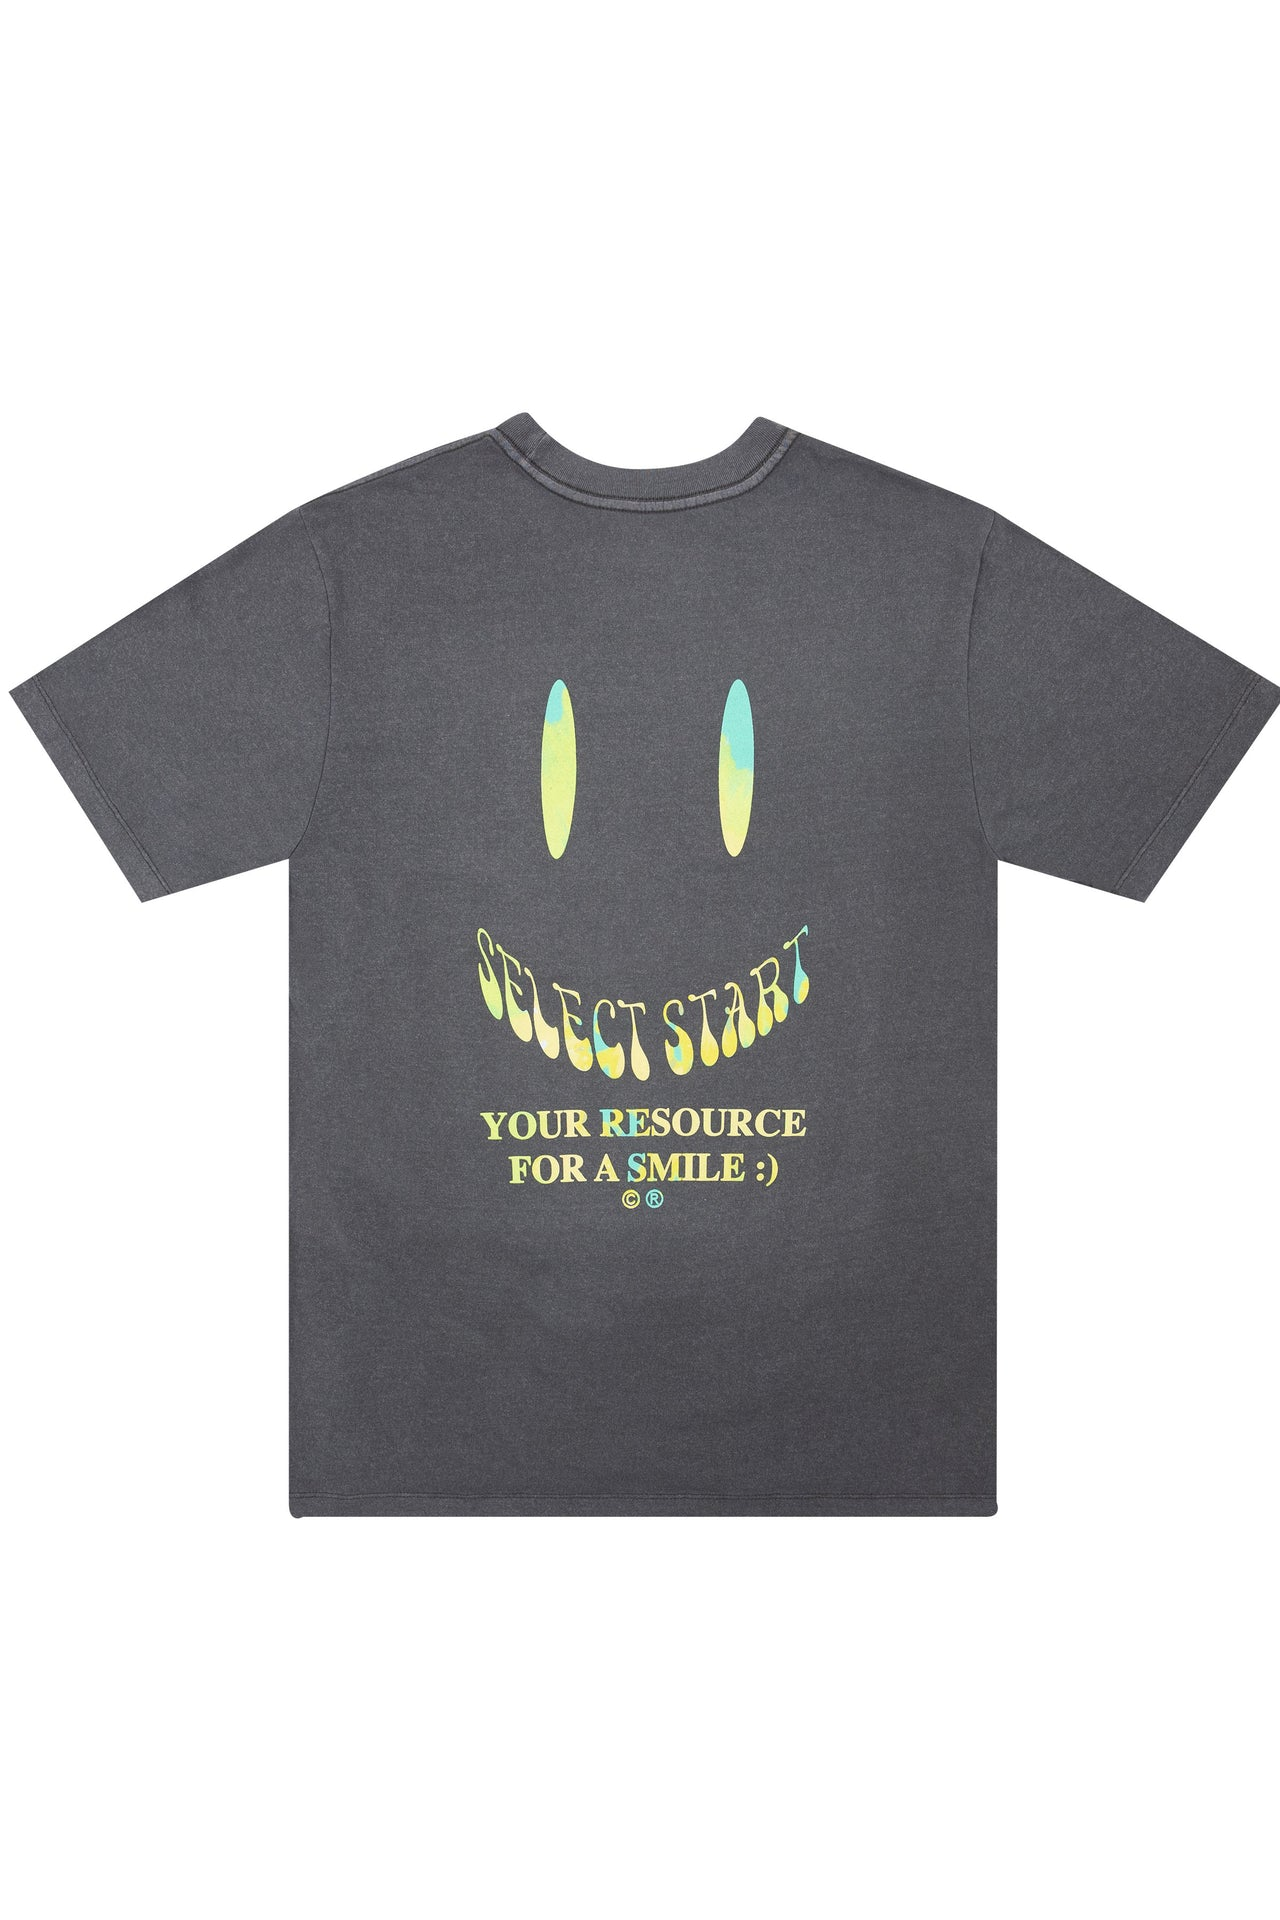 Happiness Tee - Select Start